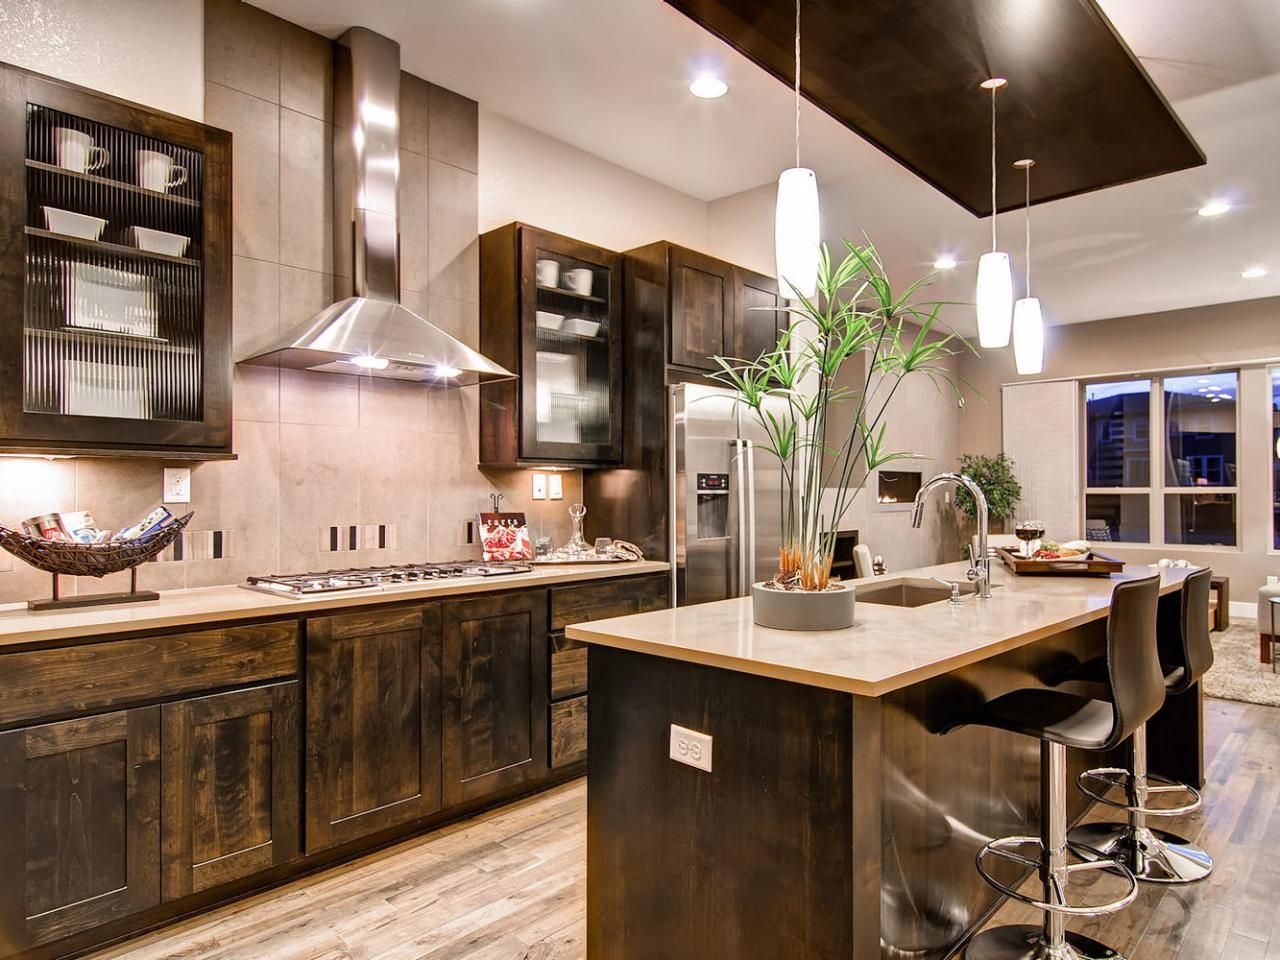 Gather Info On Kitchen Design Styles, And Prepare To Install A Stylish And Functional  Kitchen